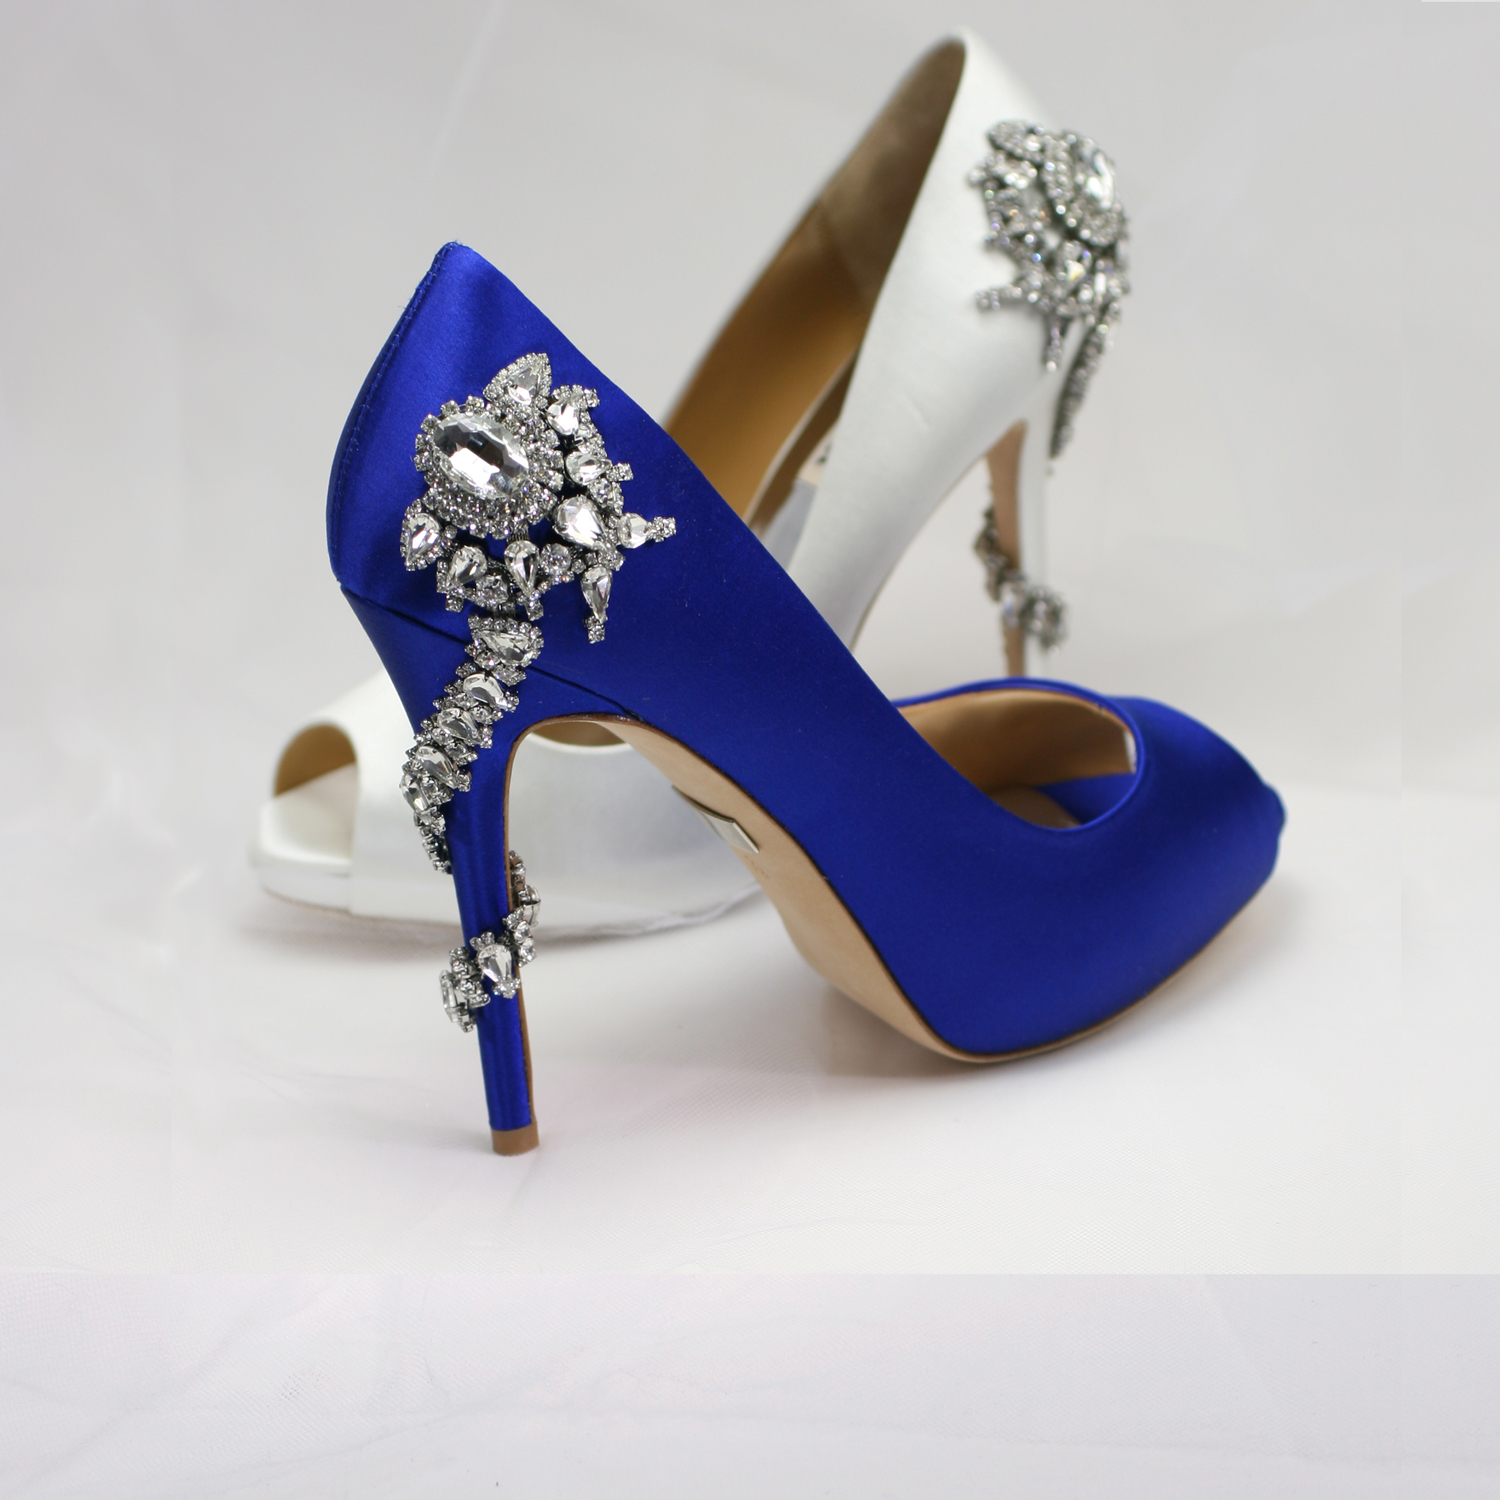 Bridal Shoes Dsw: All Kinds Of Dress Shoes For Special Occasions And Weddings